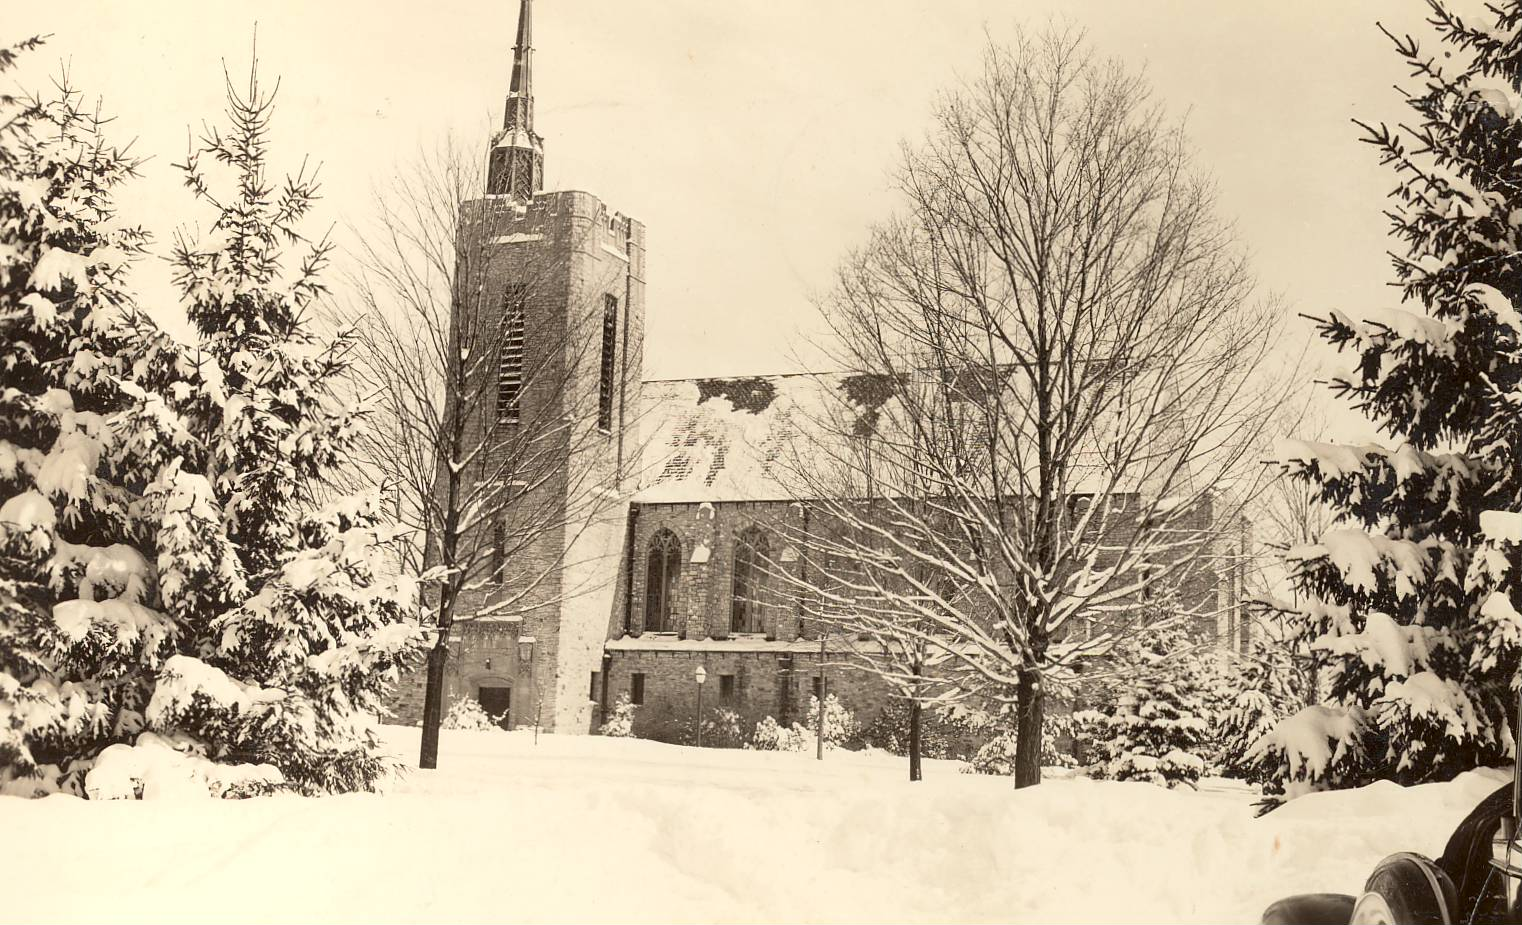 Gunnison Chapel on the campus of St. Lawrence University, in the snow. This image is from a postcard published in the 1940's.